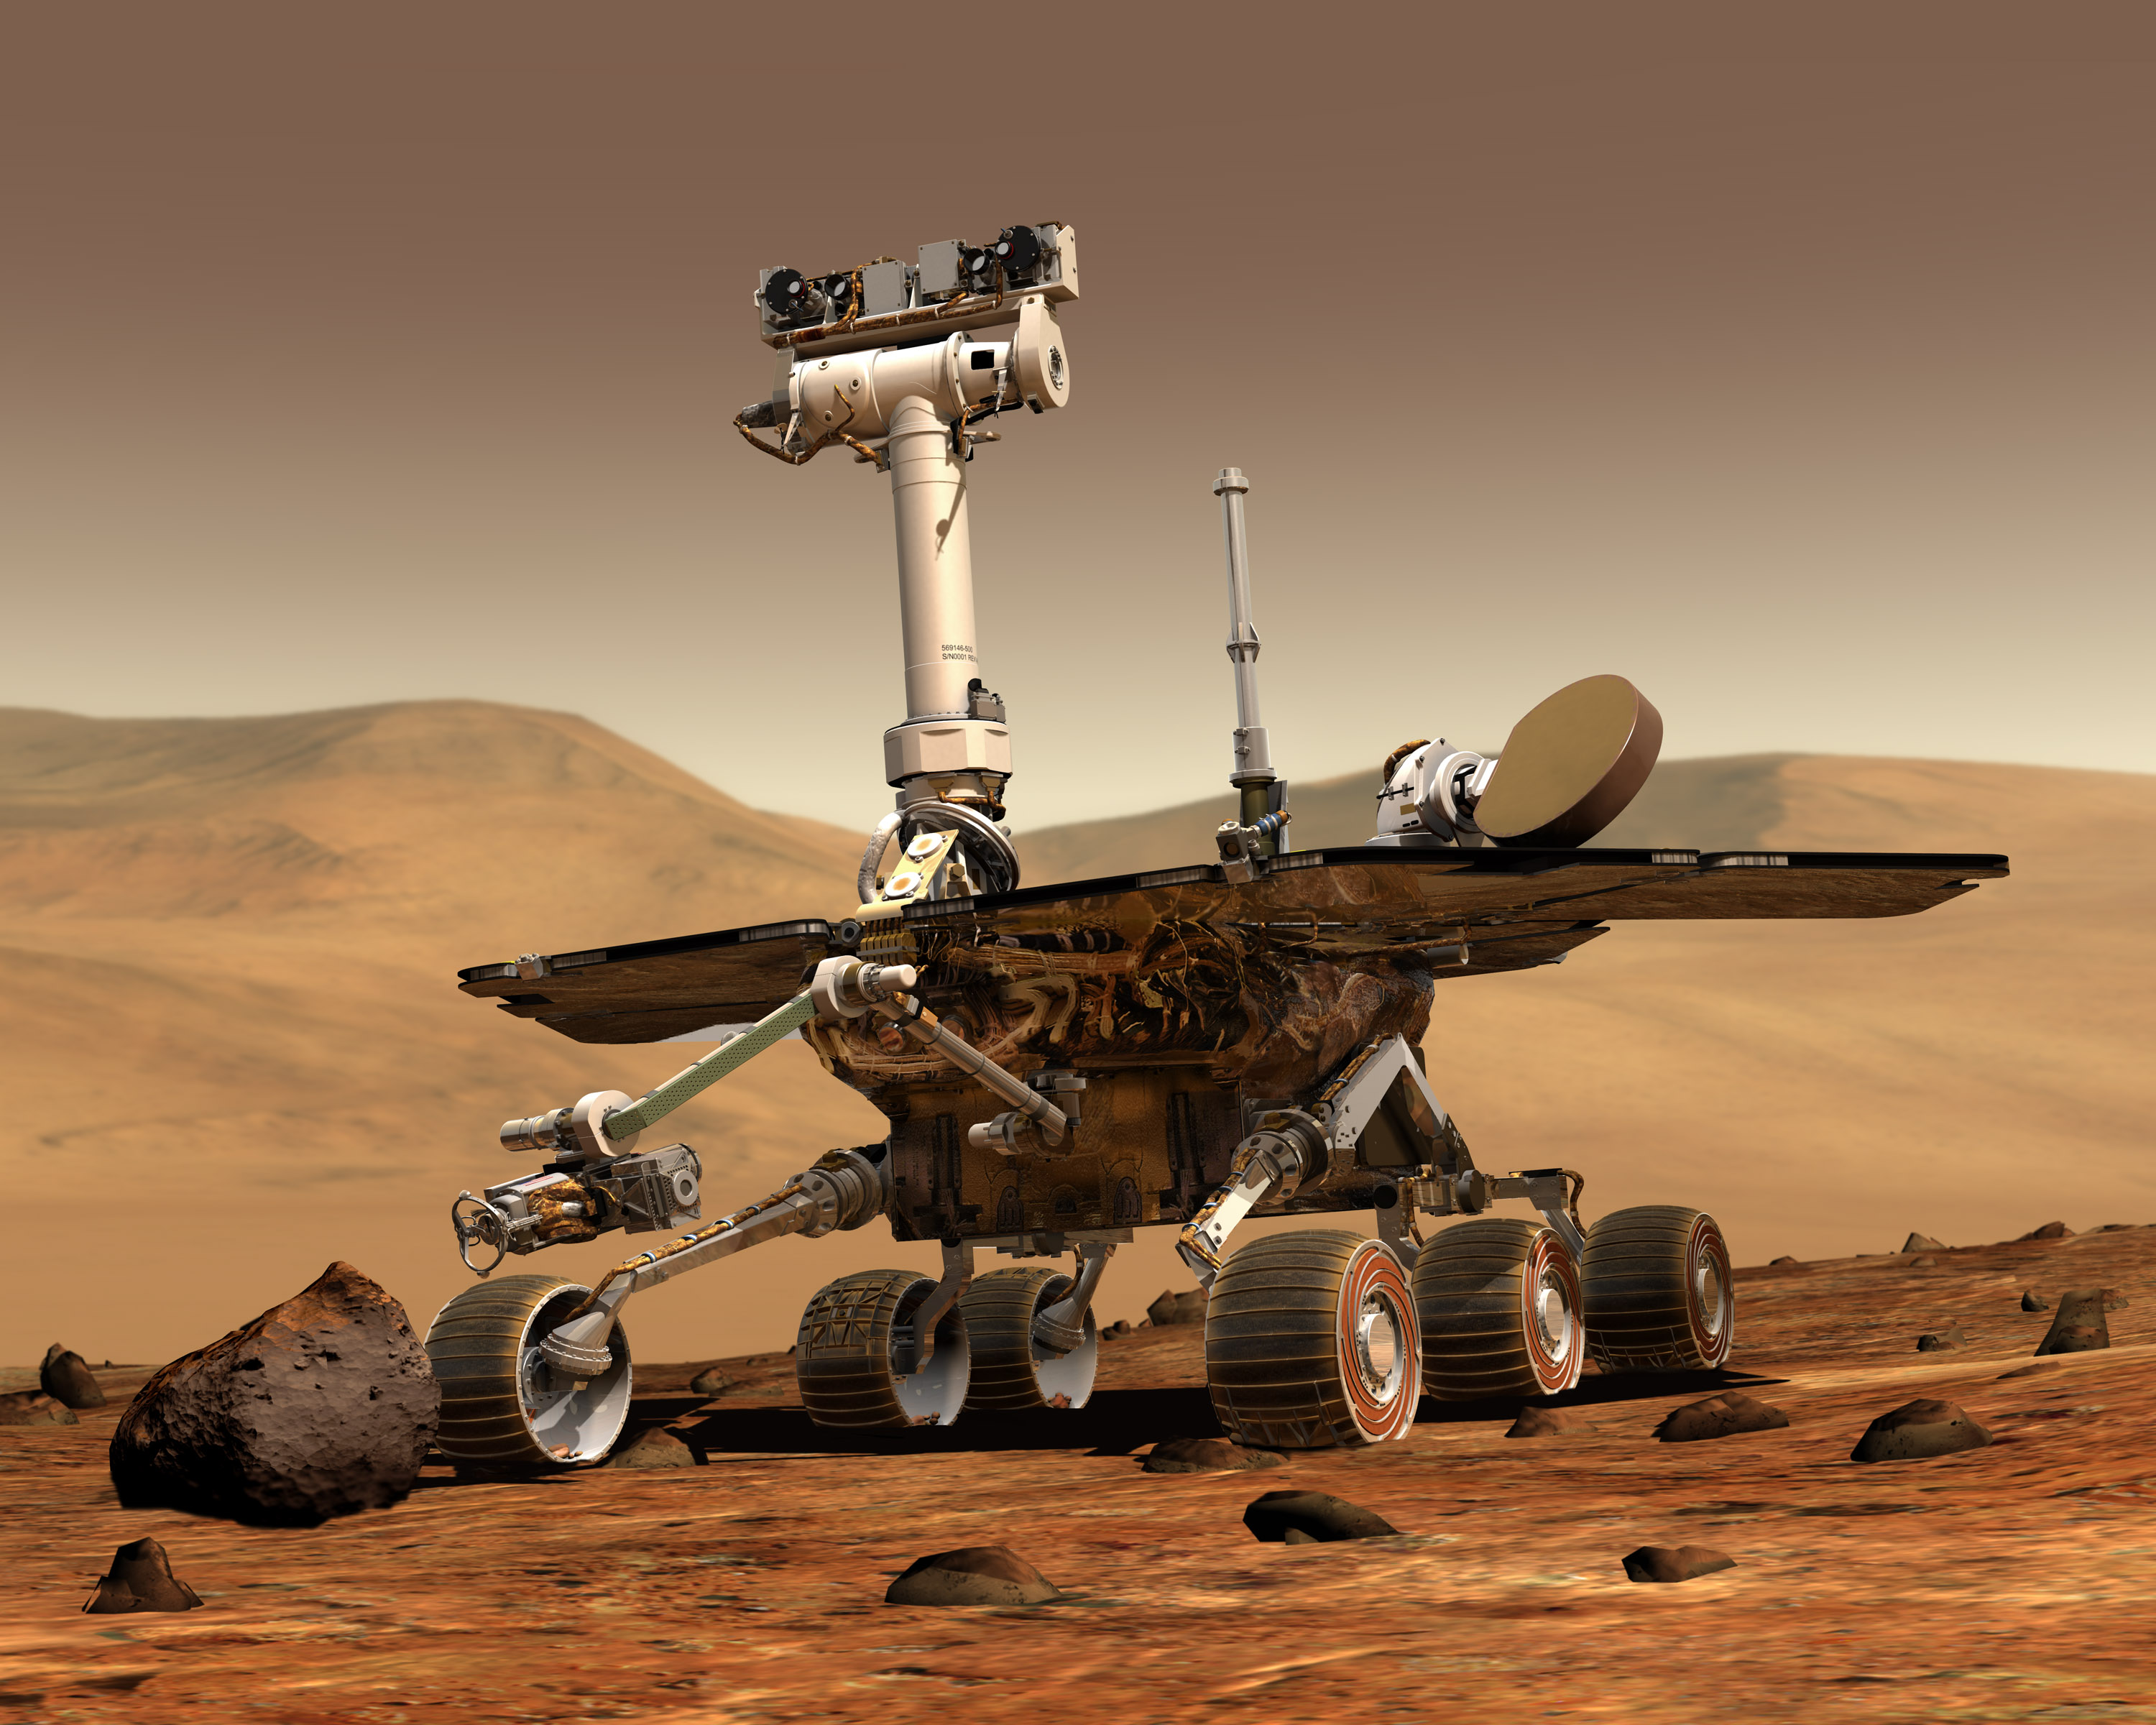 space exploration on mars - photo #23